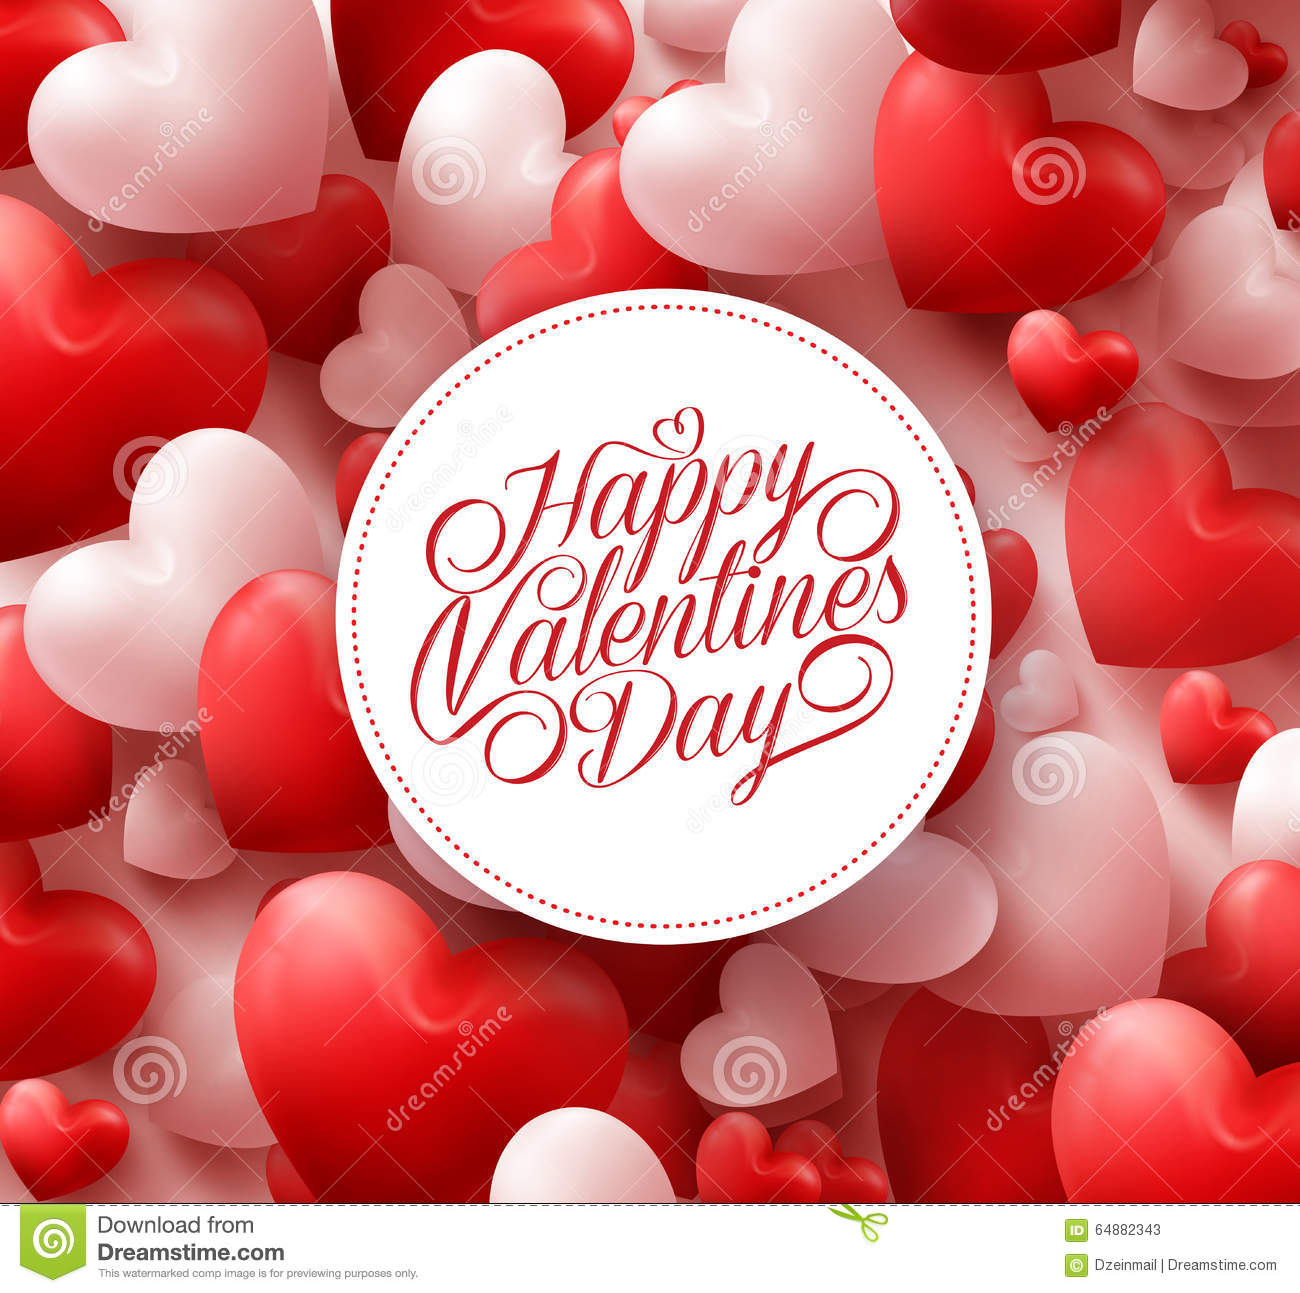 Red Hearts Background With Happy Valentines Day Greetings Stock